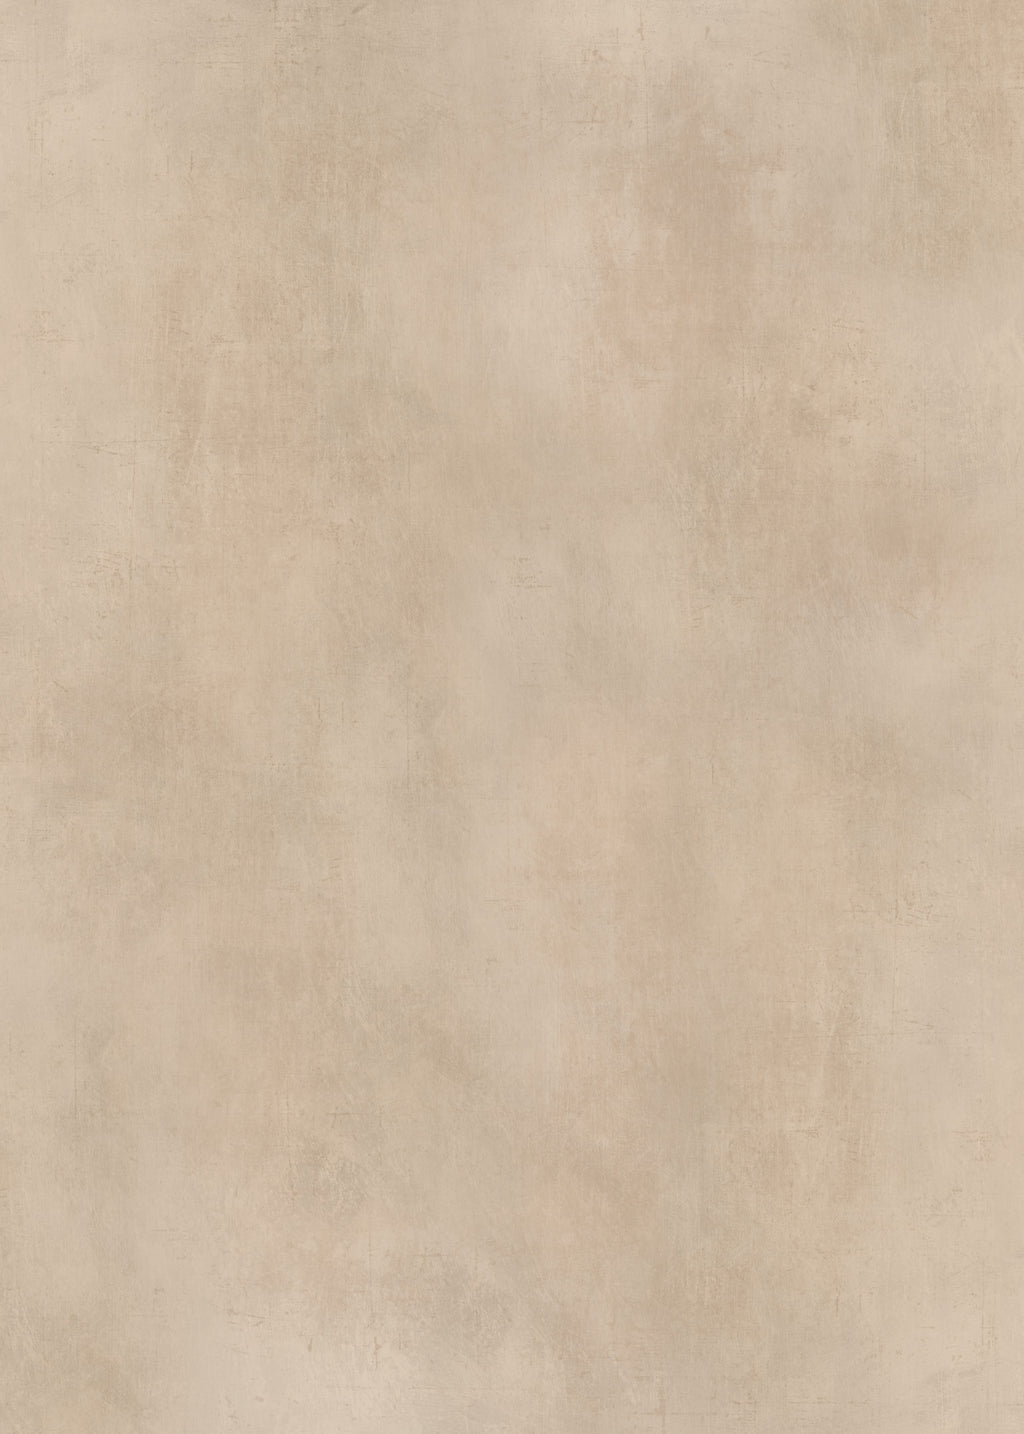 Ezy Beige Large Vinyl Photography Backdrop by Club Backdrops